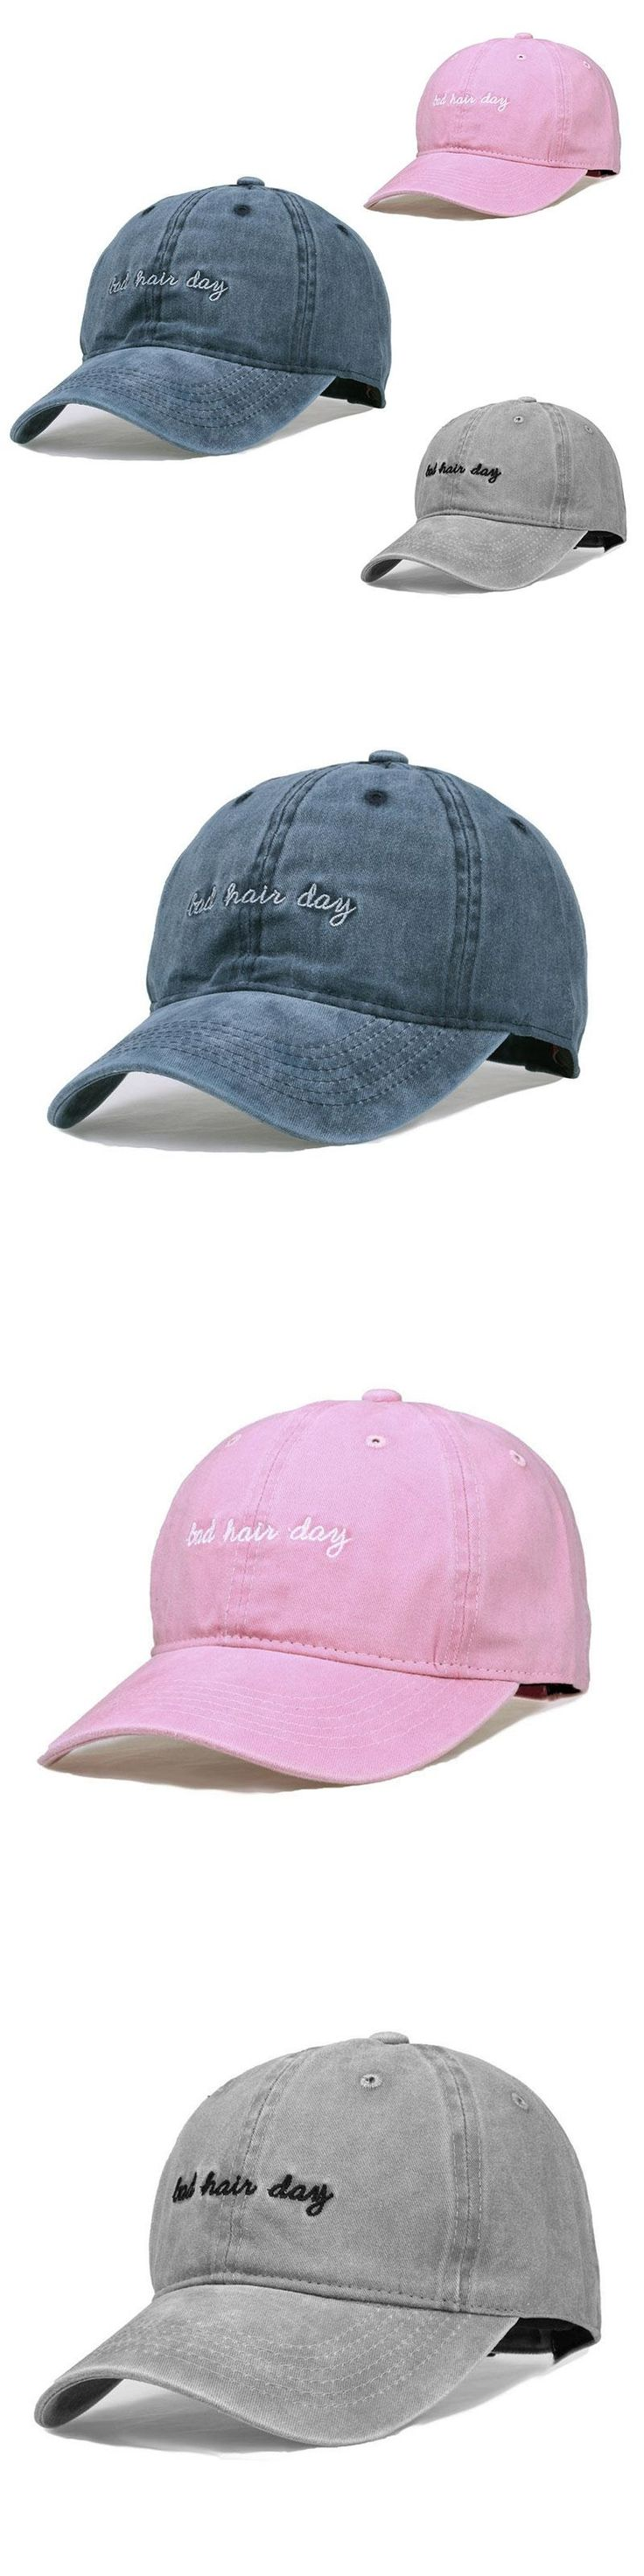 Hats 2017 Unisex Winter Unisex Casual Solid Embroidery Safety Pin Curved Hats Baseball Cap Men Women Caps Casquette Gorras